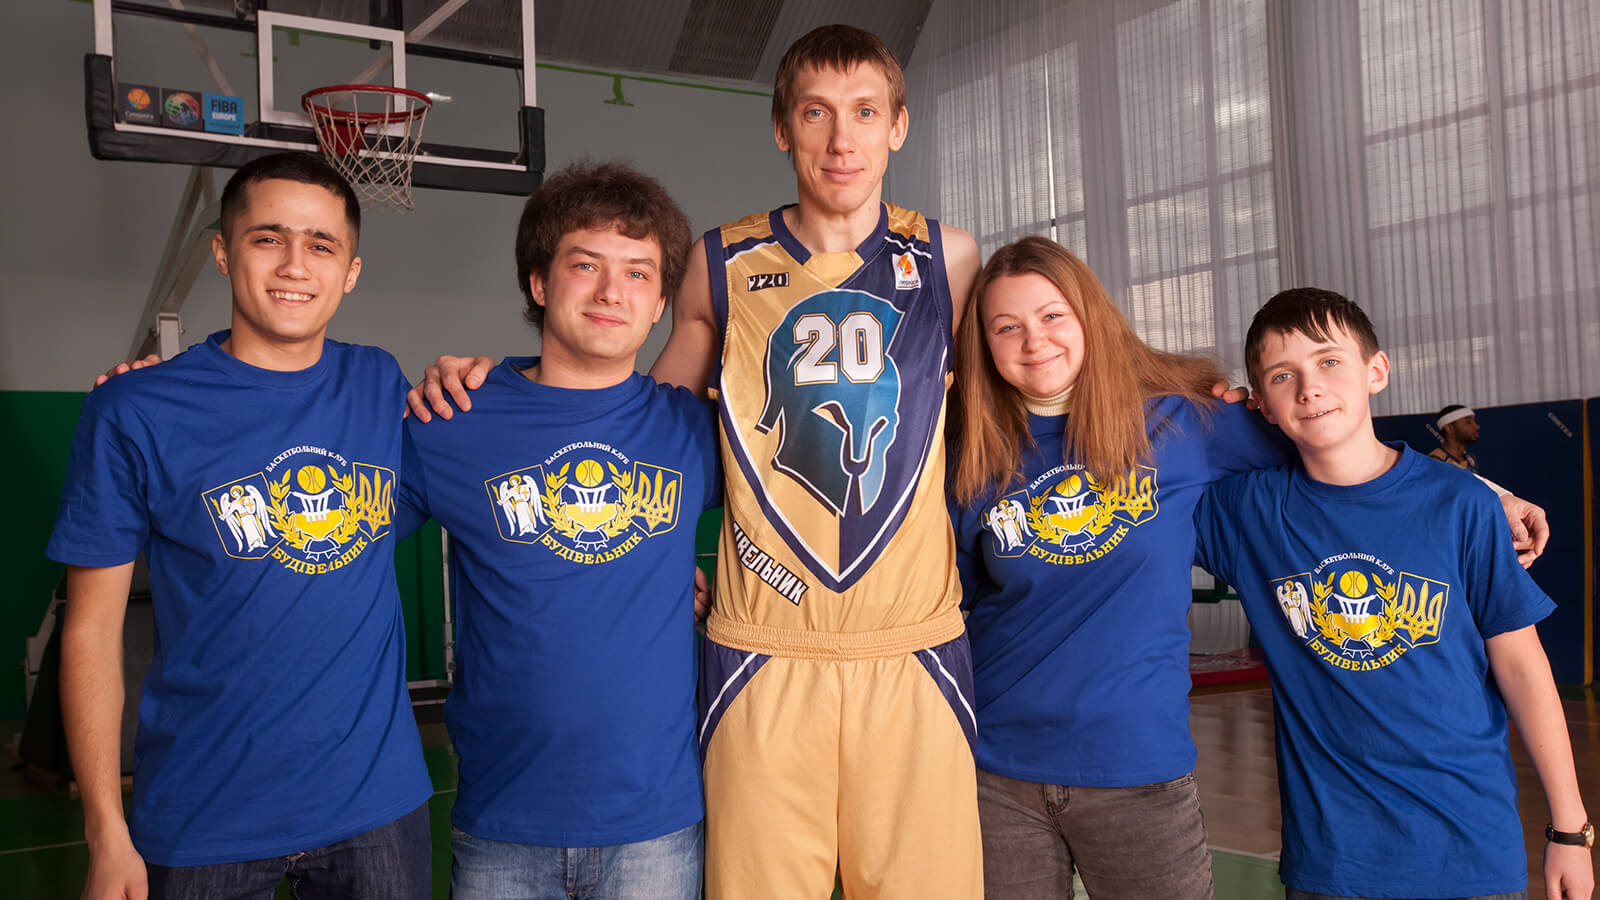 Photoshoot players with fans